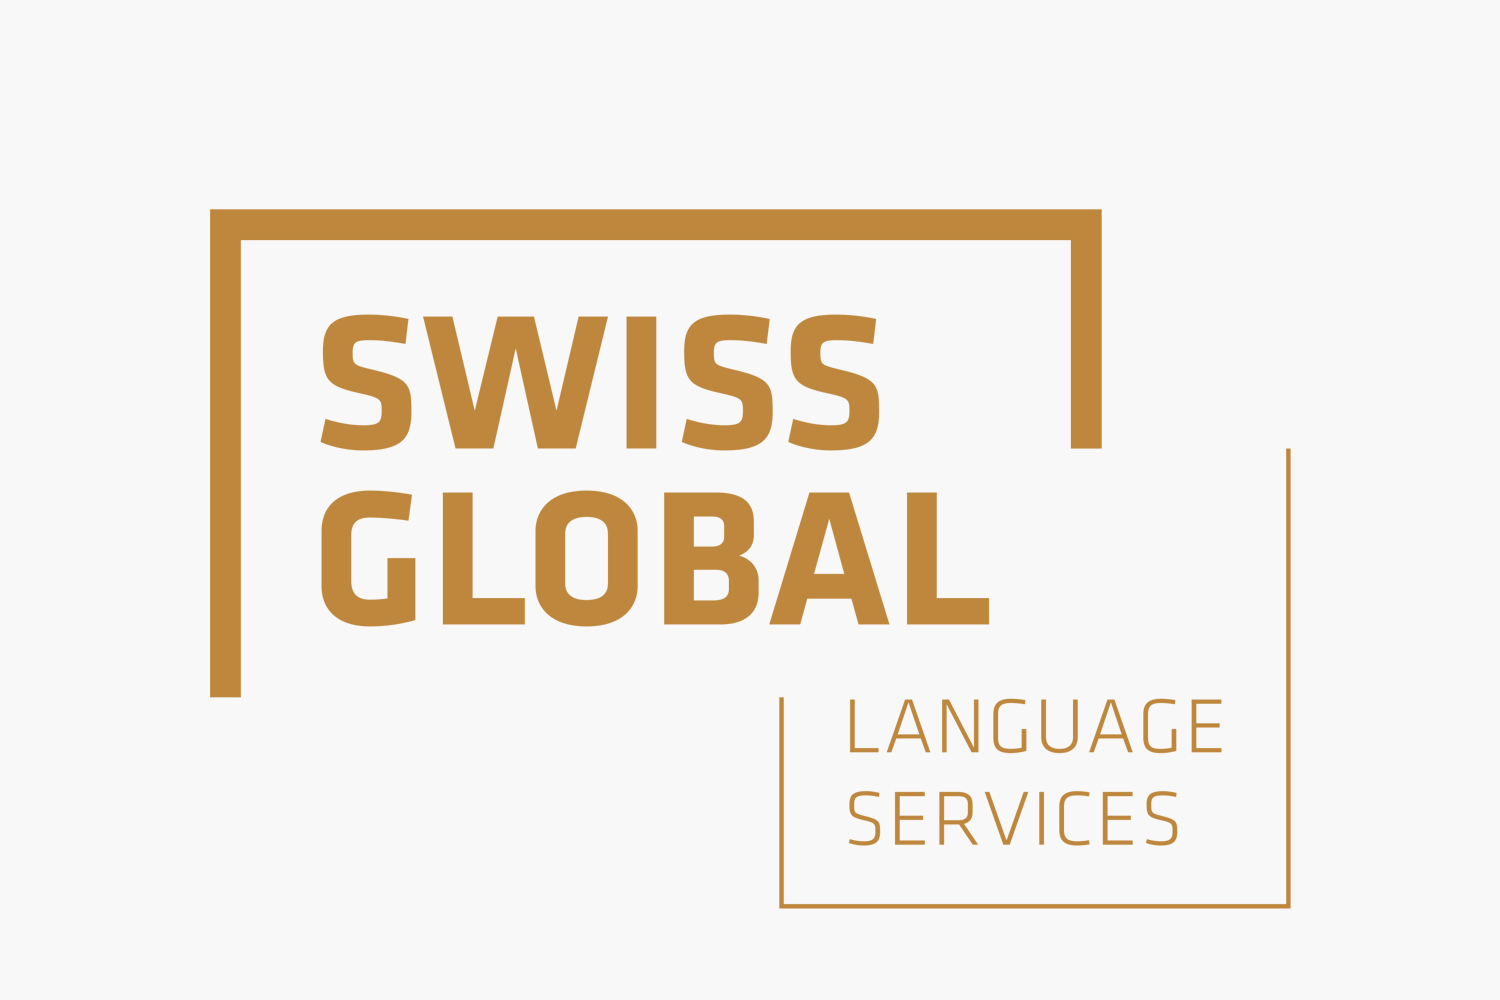 ok_Swiss-Global-languages-services.jpg